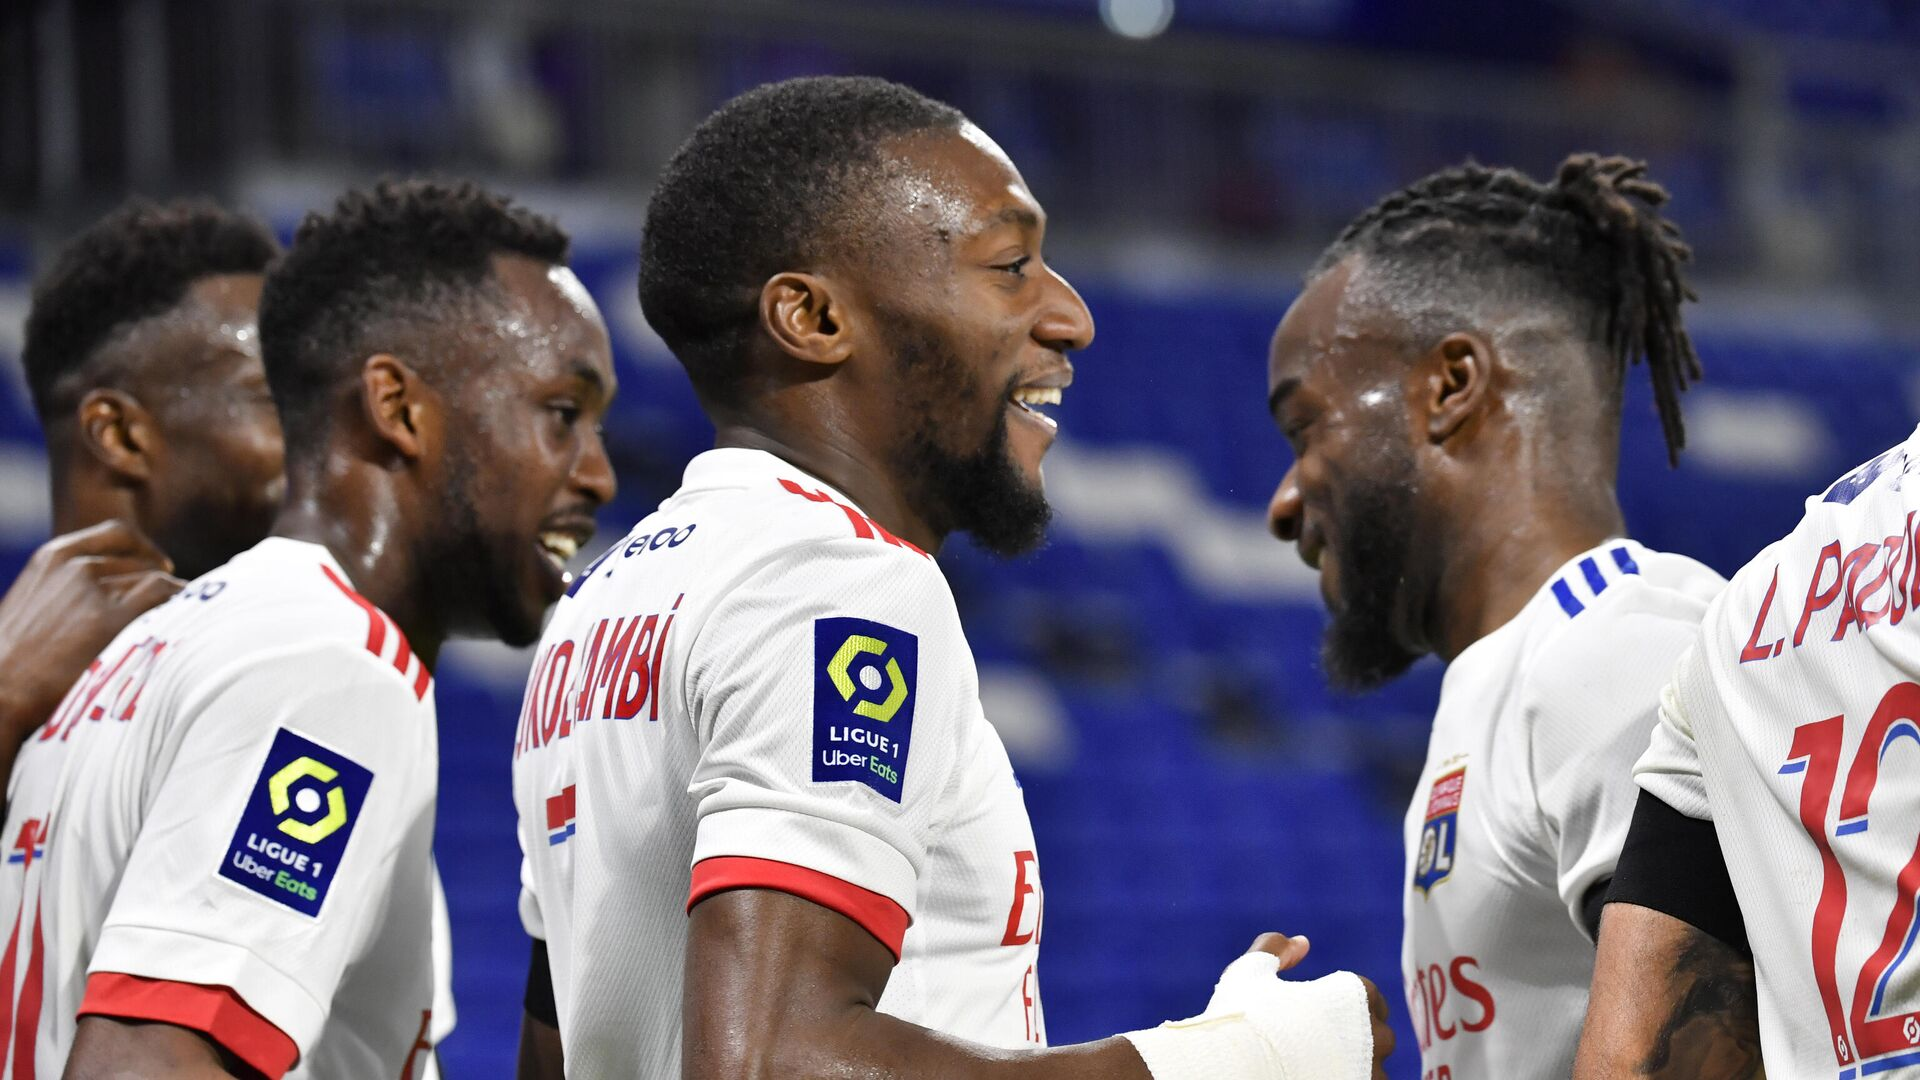 Lyon's Camerounese forward Karl Toko Ekambi (C) is congratuled by teamates after scoring a goal during the French L1 football match between Olympique Lyonnais (OL) and AS Monaco at the Groupama stadium in Decines-Charpieu, near Lyon, south-eastern France, on October 25, 2020. (Photo by PHILIPPE DESMAZES / AFP) - РИА Новости, 1920, 26.10.2020